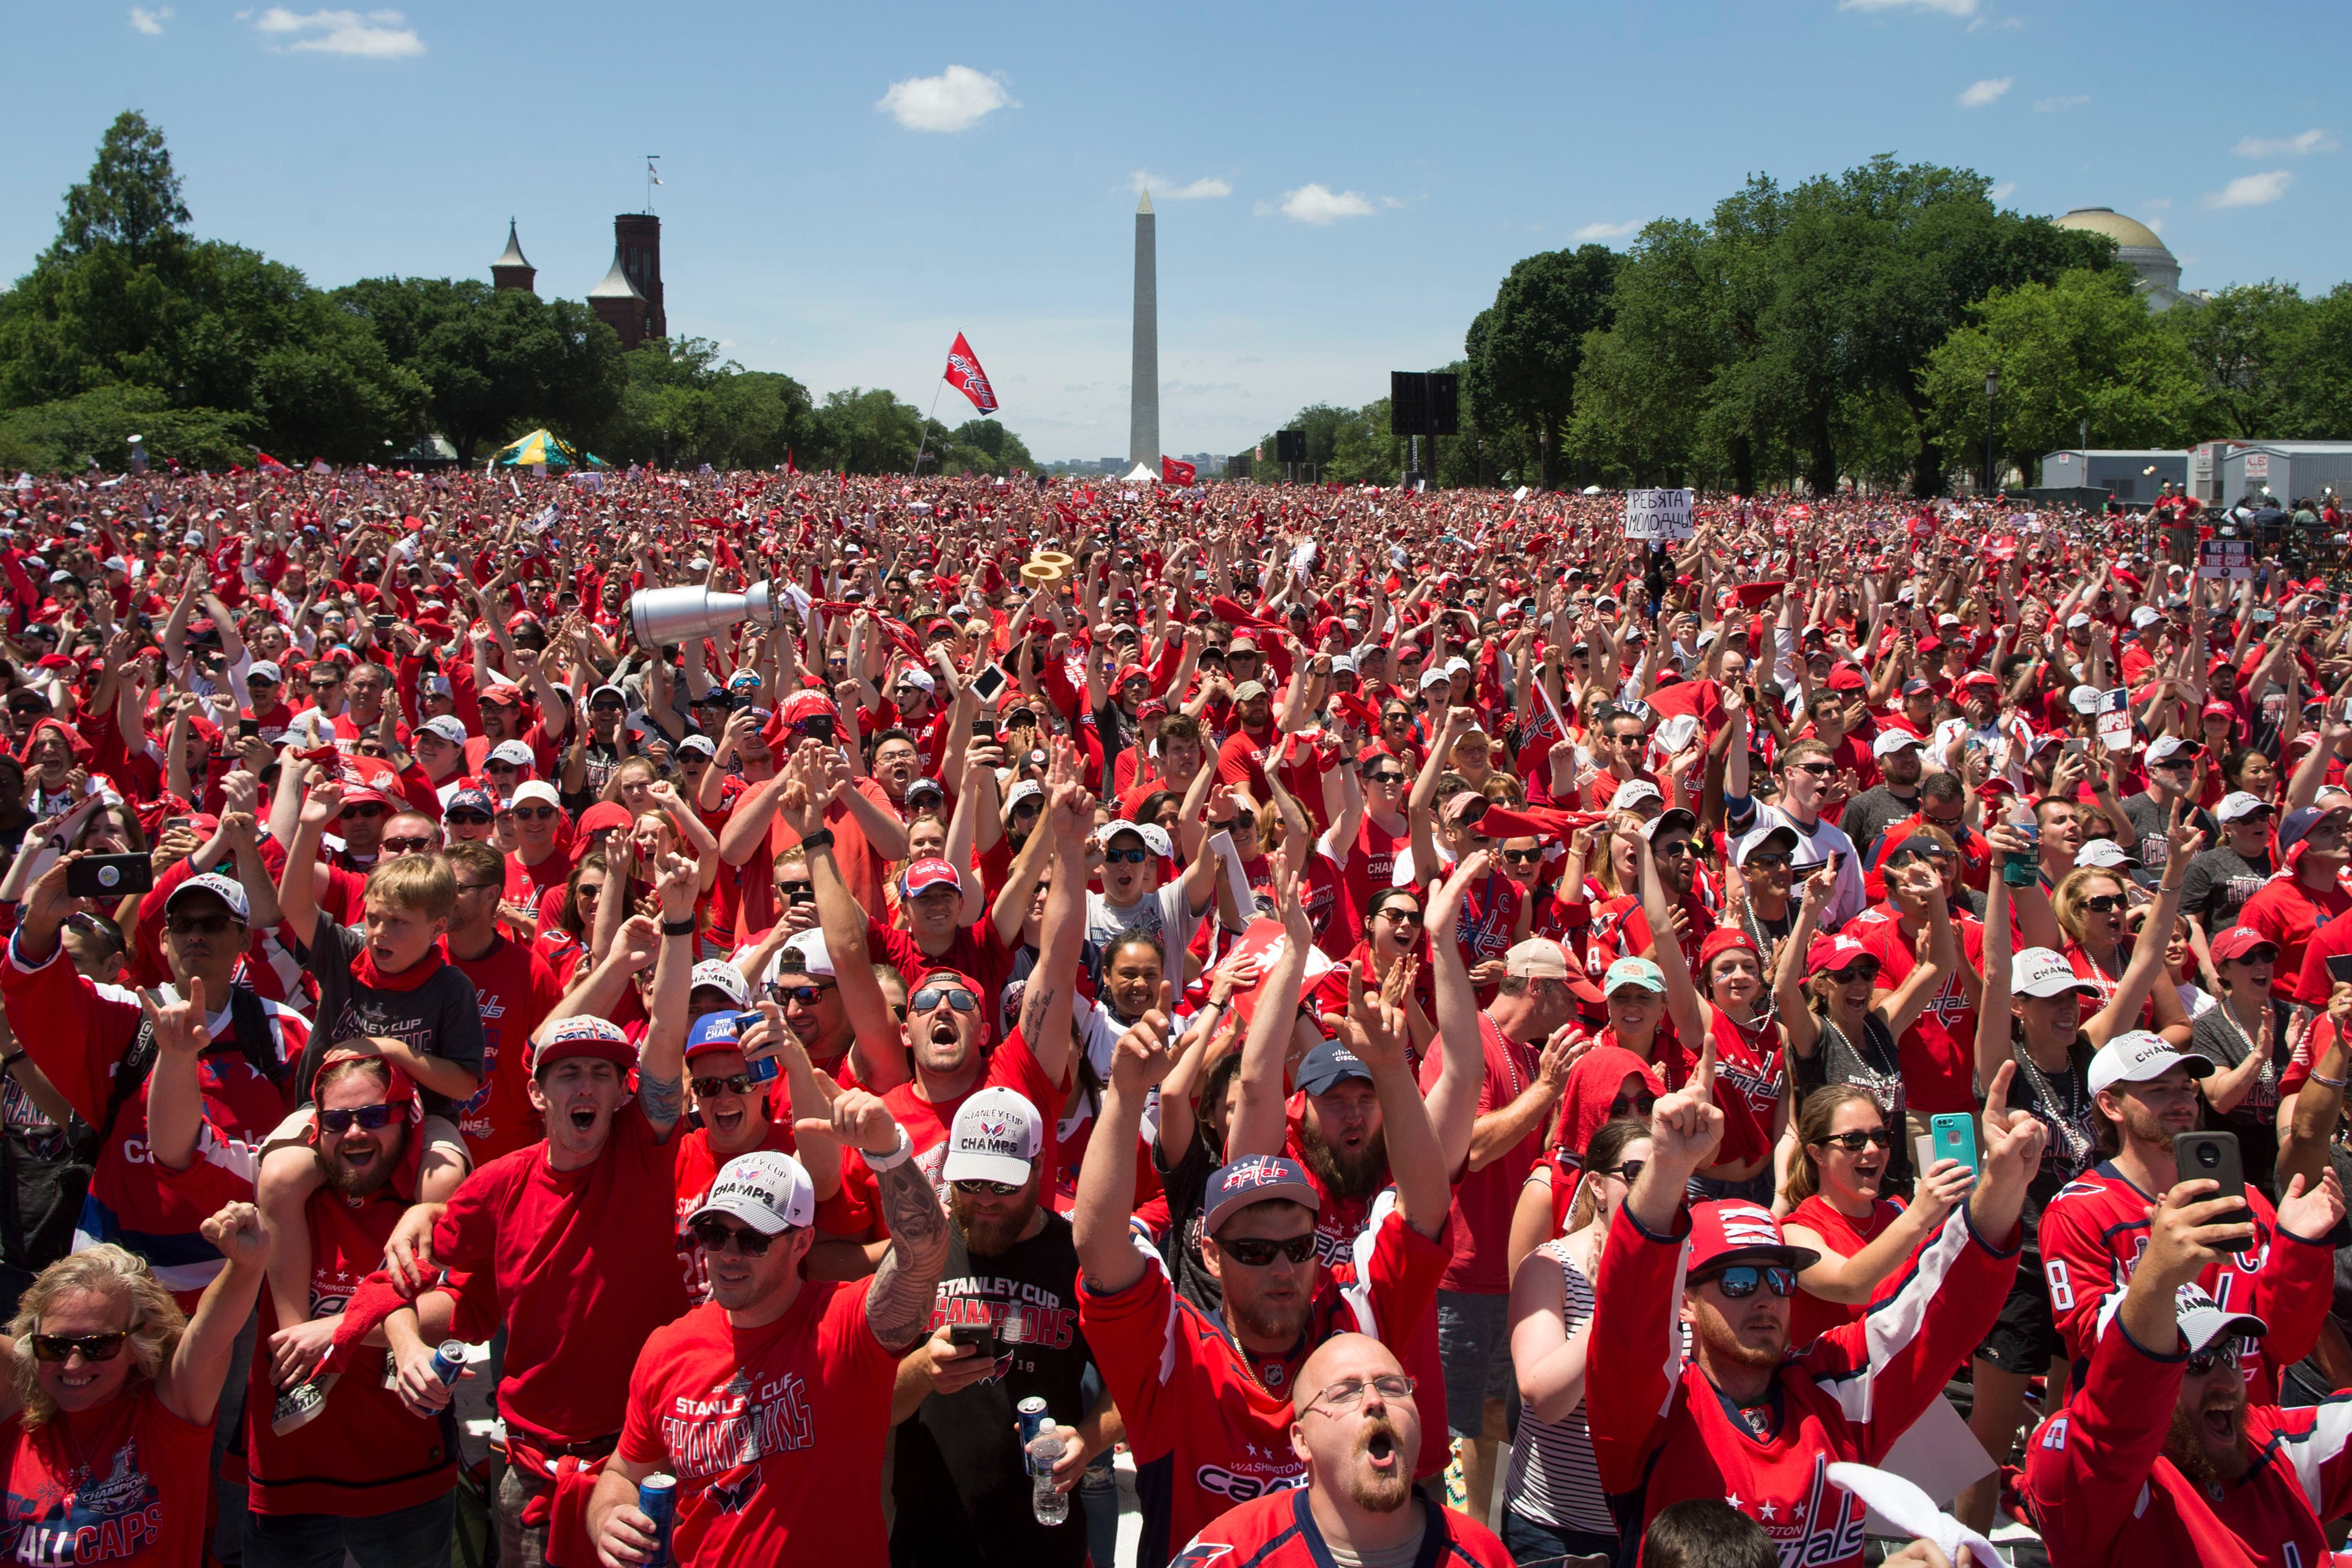 d4c3dcb4f3d Thousands of fans cheer during a victory celebration for the 2018 Stanley  Cup champion Washington Capitals on the National Mall in Washington